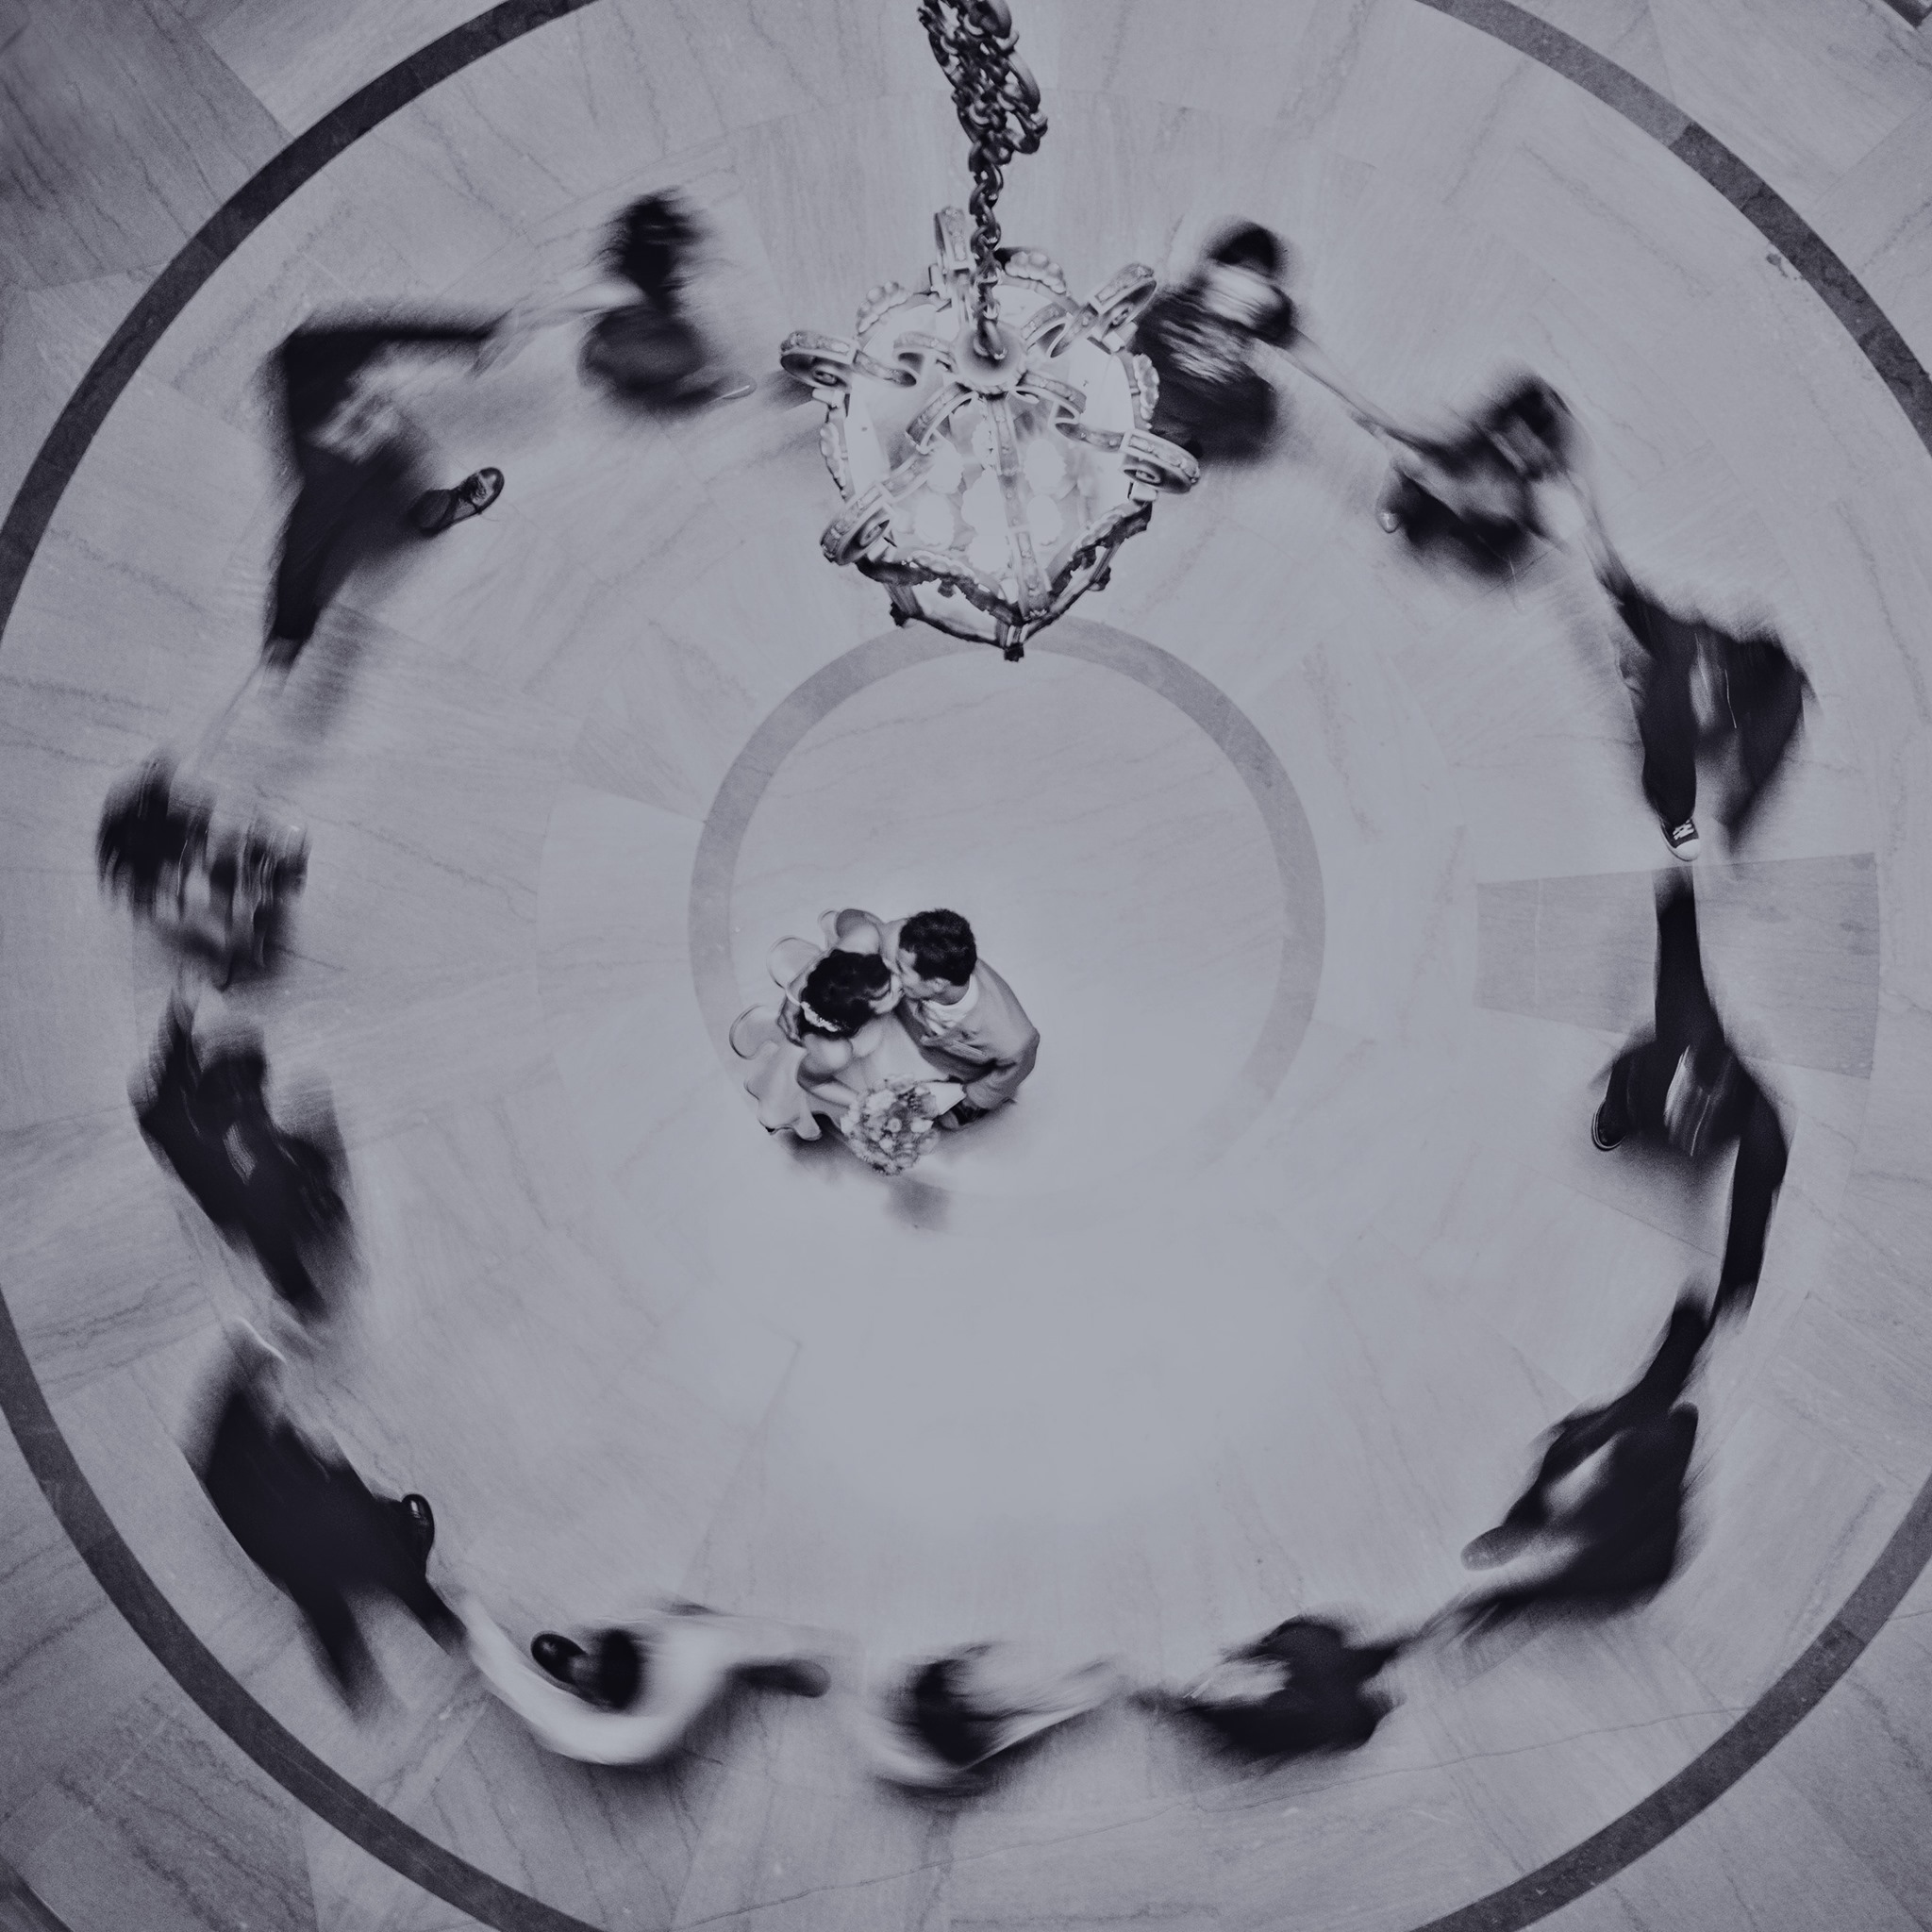 A bird eye's view of a couple dancing at the center of a circle created by the bridesmaid and groomsmen